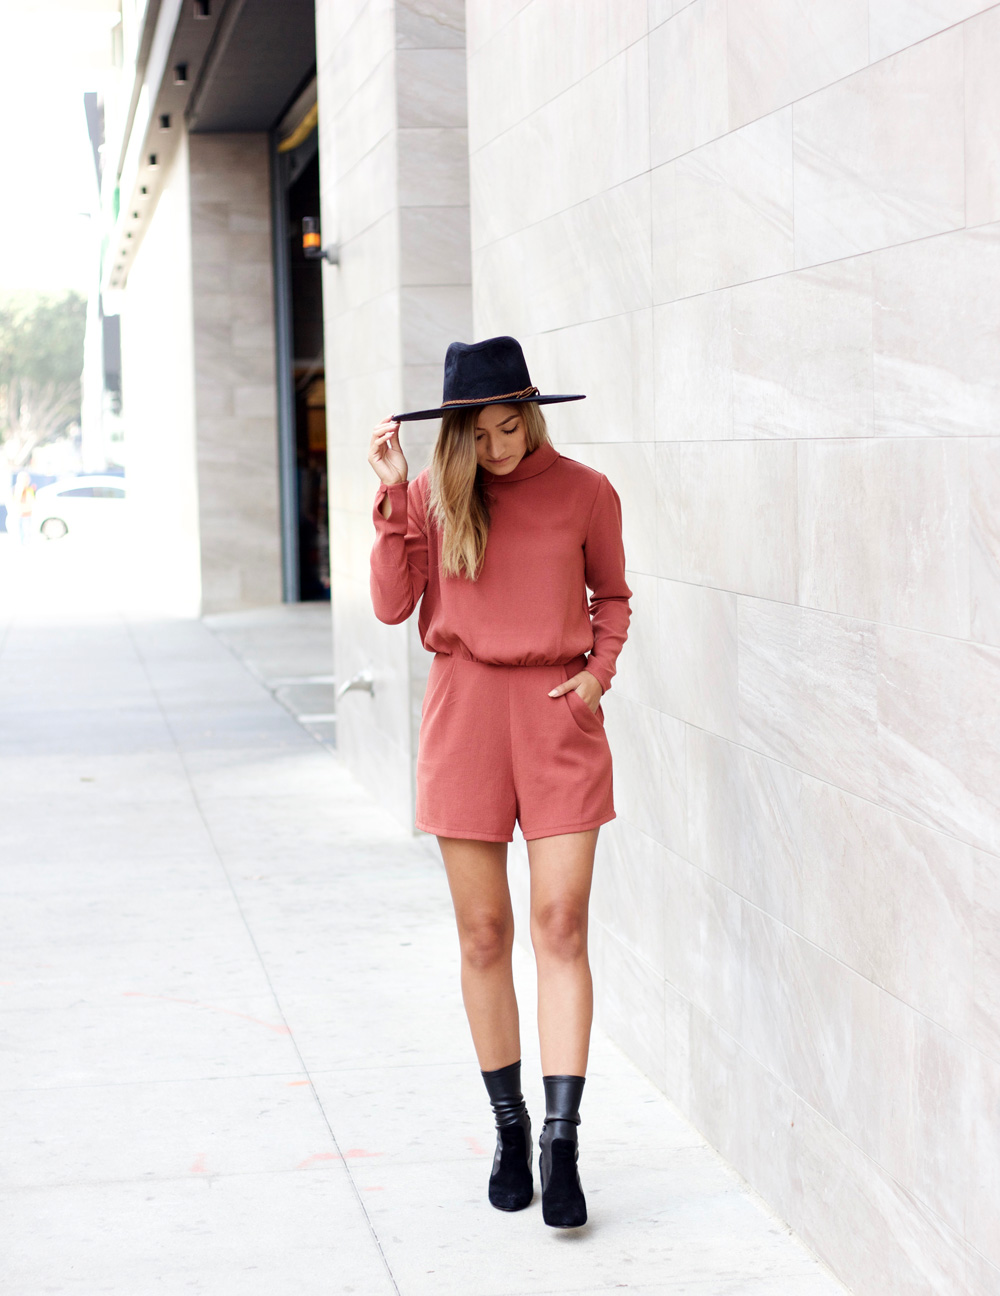 san francisco find, hat, fall, ootd, melrodstyle, la blogger, latina blogger, mexican blogger, hispanic blogger, street style, fashion, personal style, stylist, outfit,